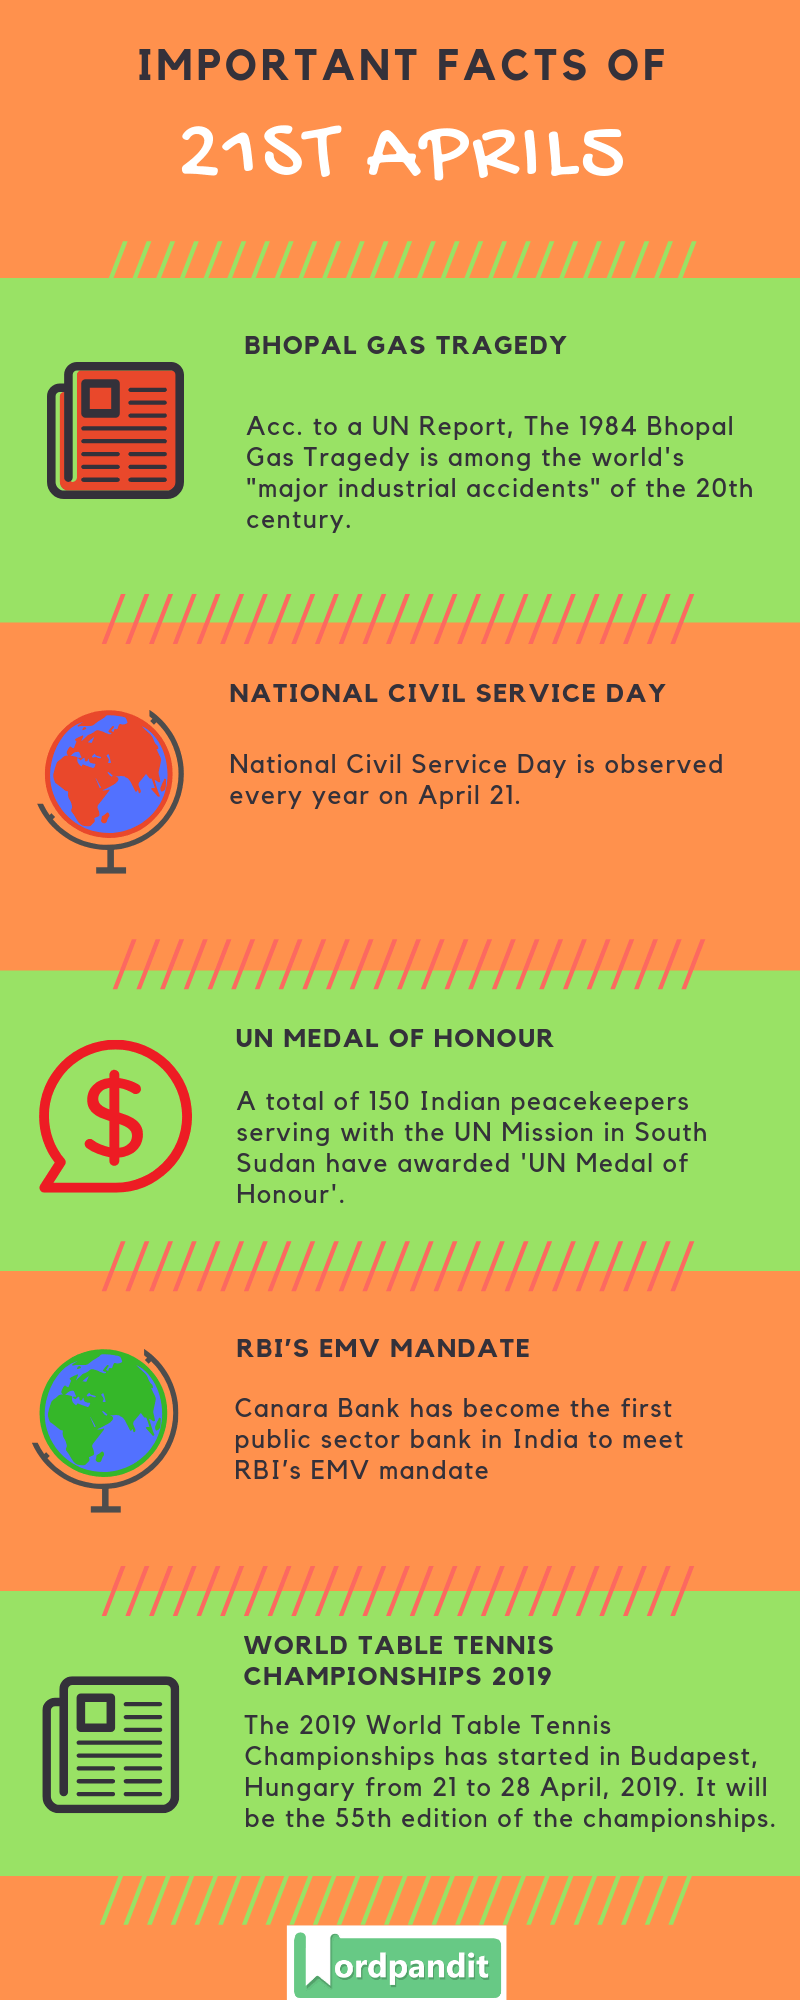 Daily Current Affairs 21 April 2019 Current Affairs Quiz 21 April 2019 Current Affairs Infographic